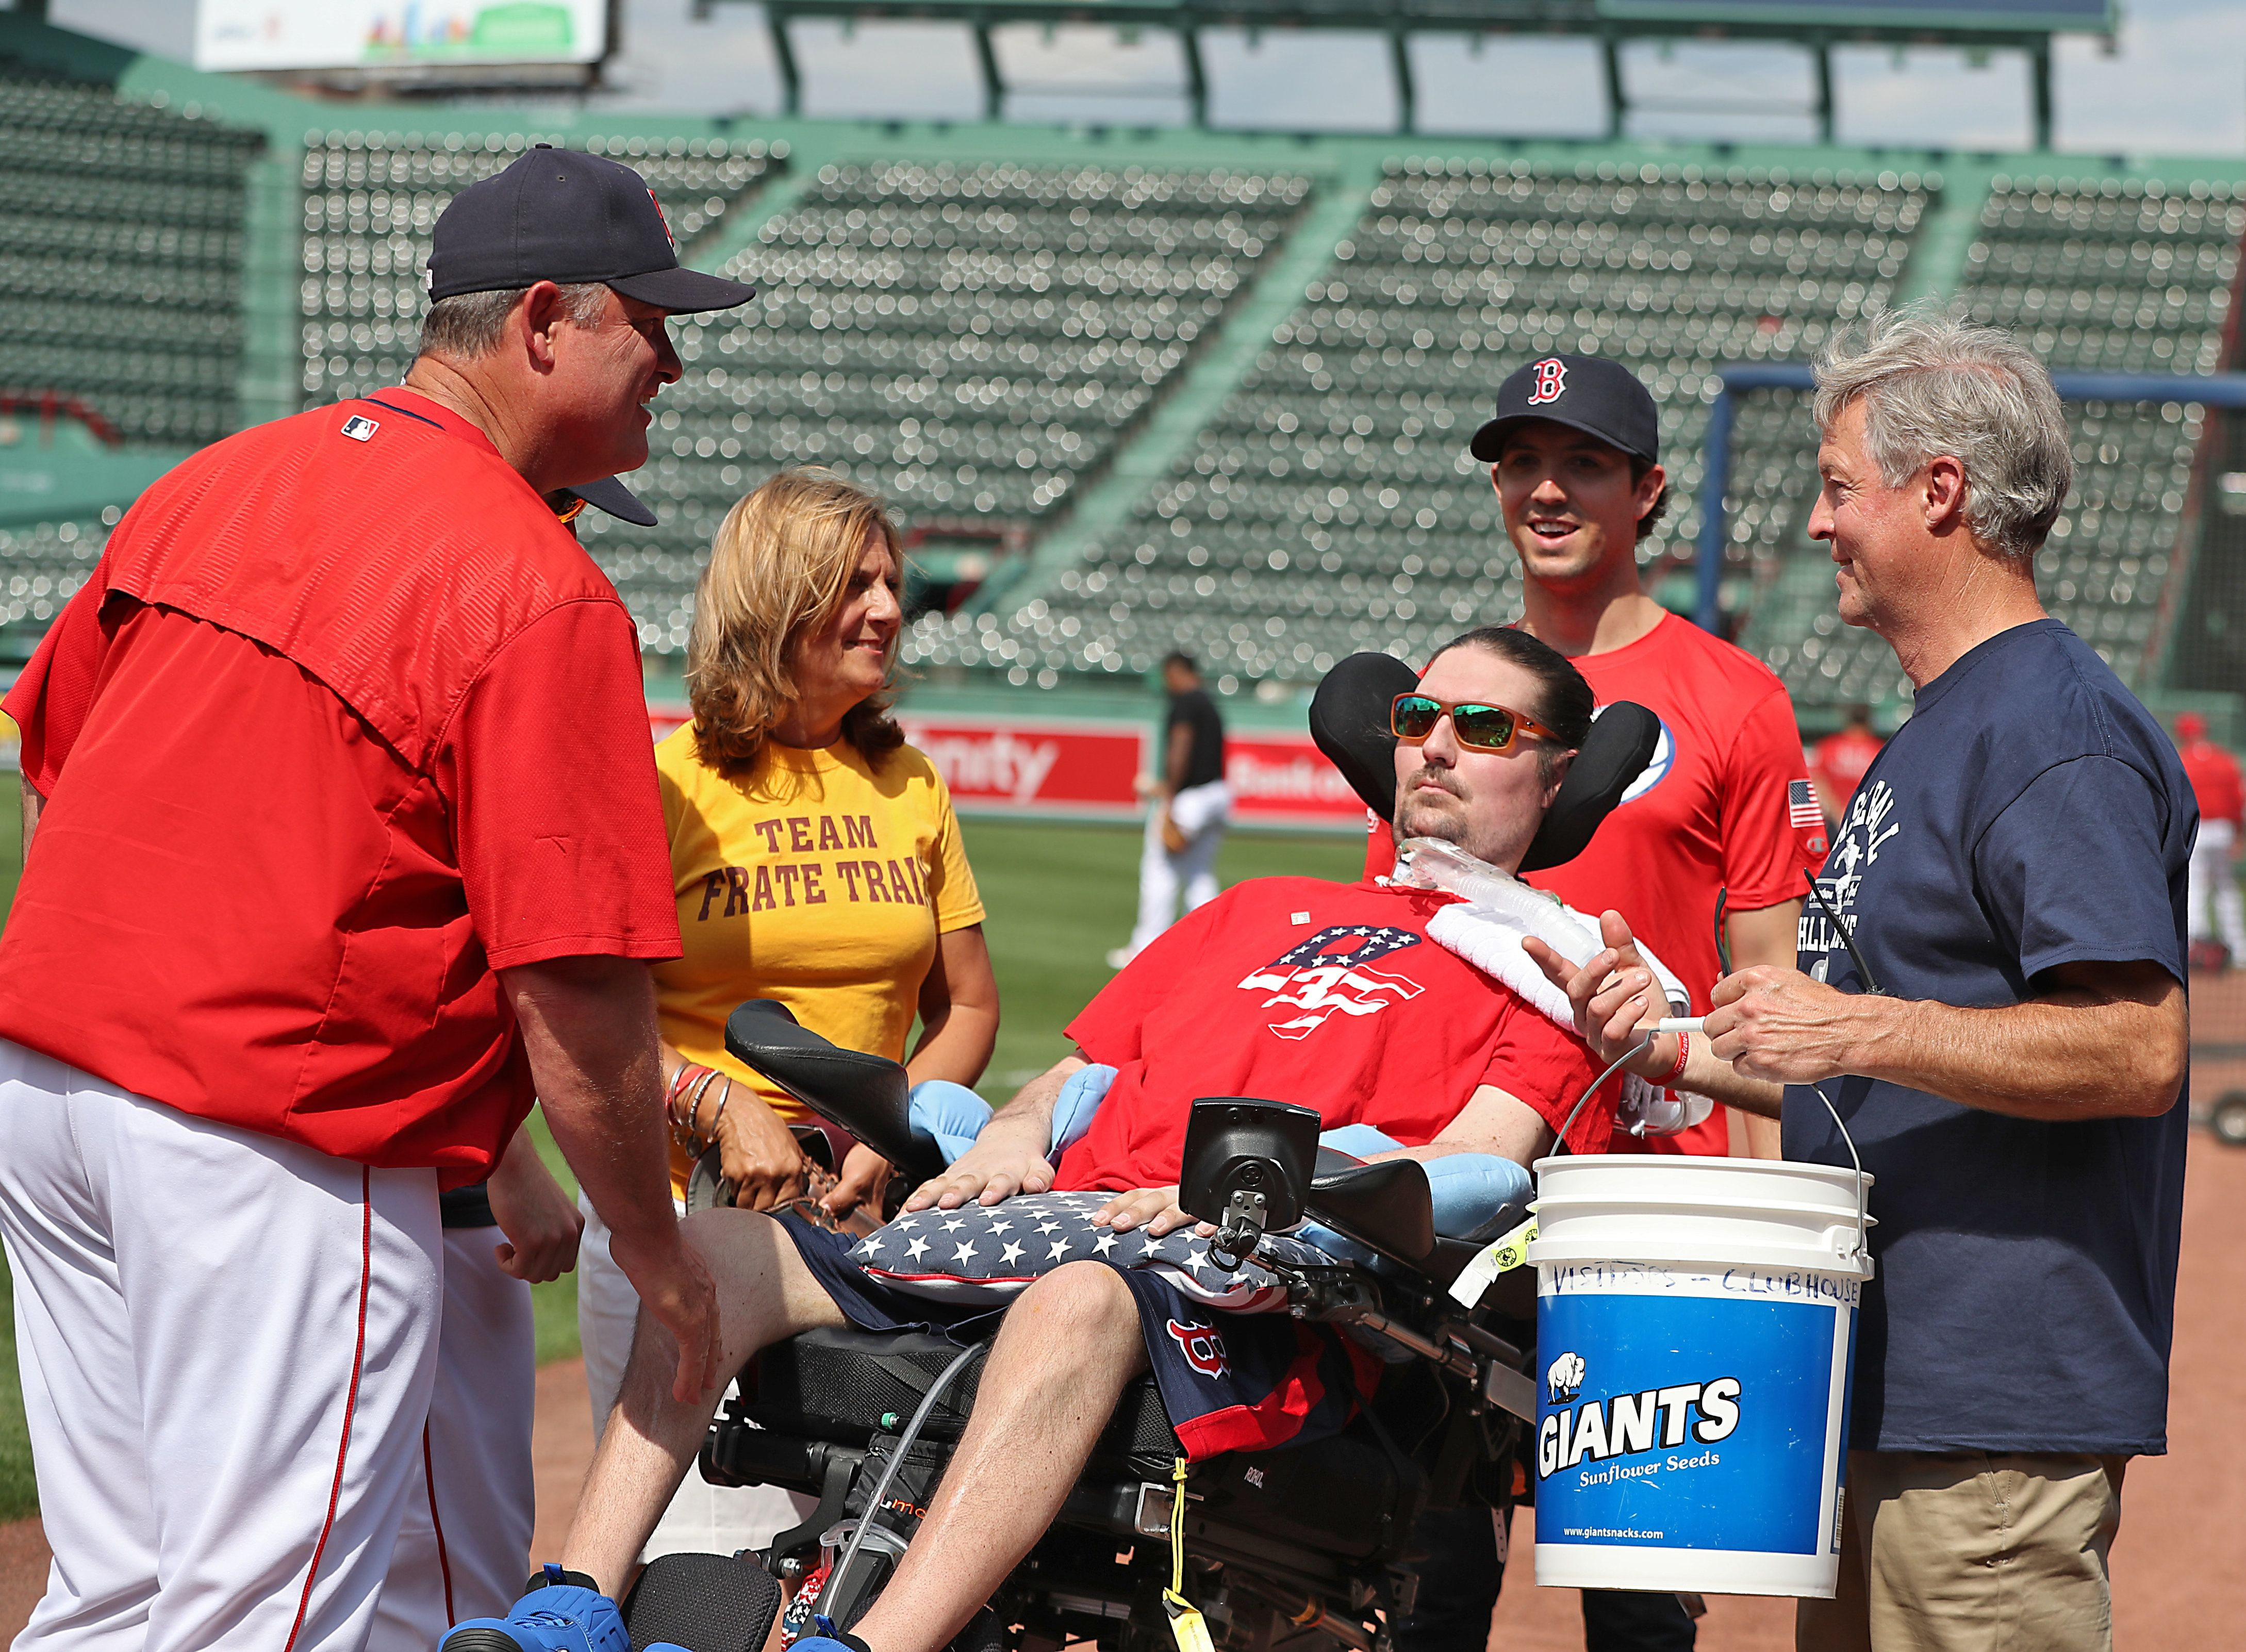 Boston Red Sox manager John Farrell greets Frates and his family at Fenway Park in Boston in June. During his visit, Frates d